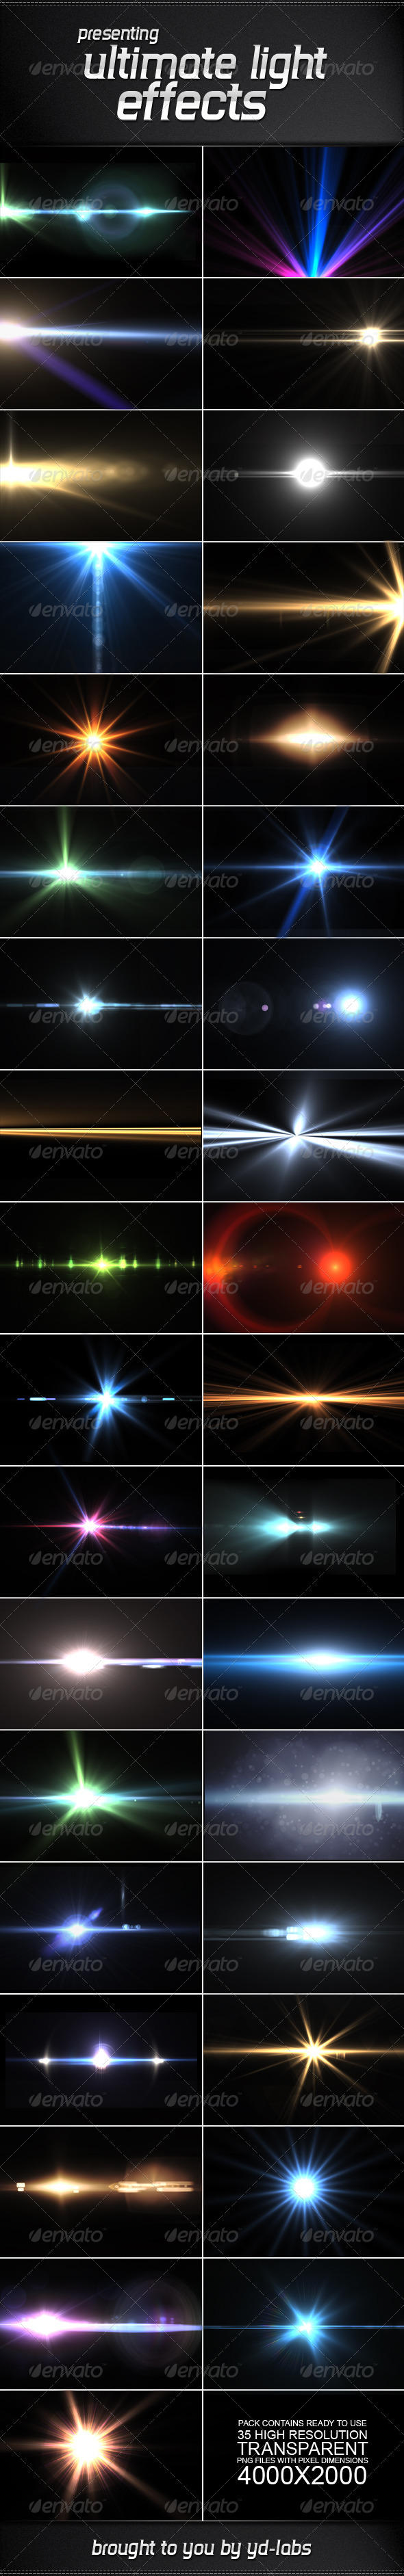 35 Ultimate Light Effects Volume 2 by ydlabs | GraphicRiver